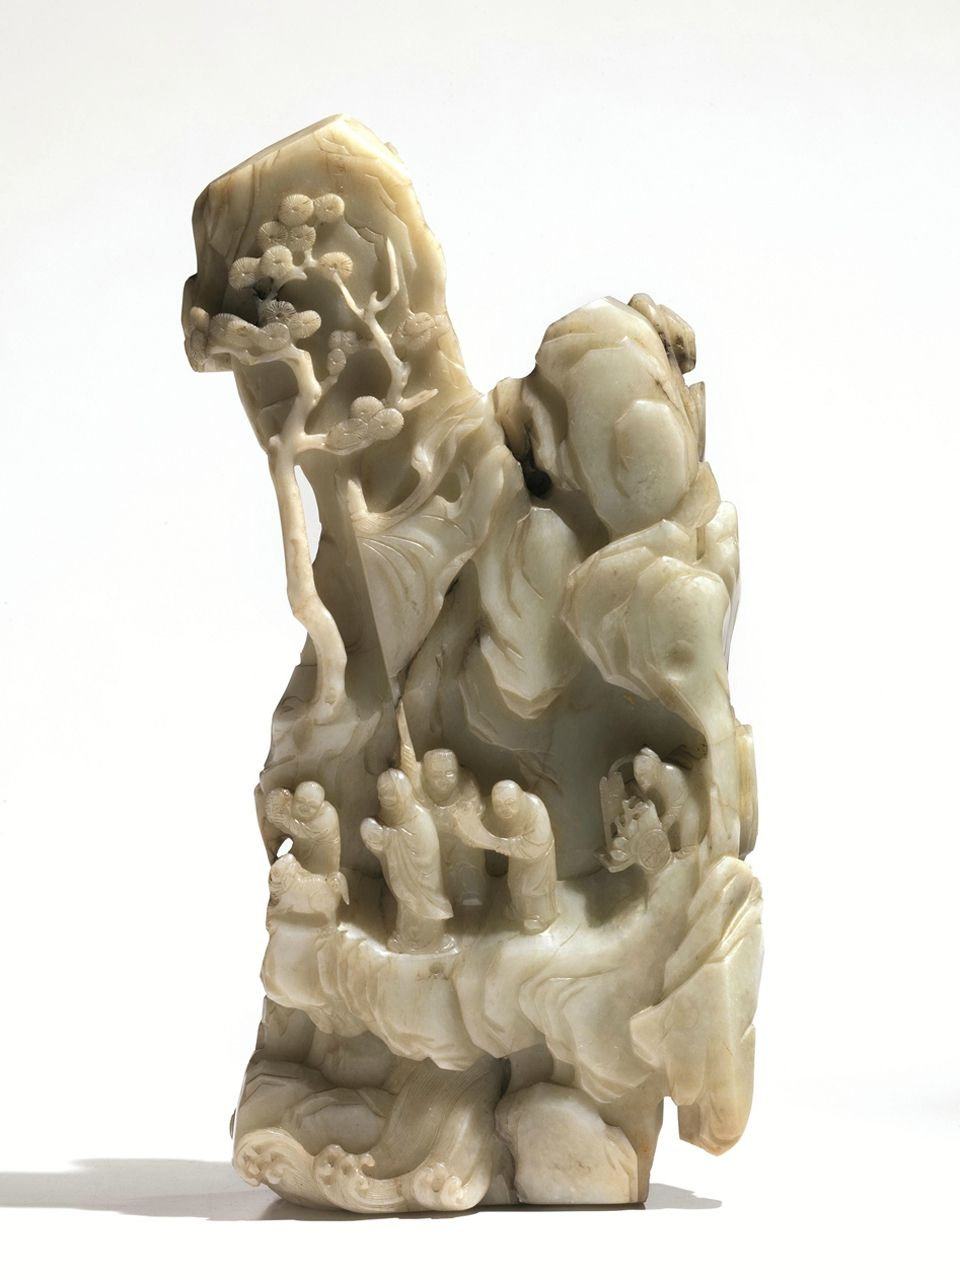 A finely carved pale green jade in the shape of a mountain with trees and figures, China, Qing dynasty, 18th century. 27 cm (10 3/5 in.). BRUN FINE ART, Dealer.